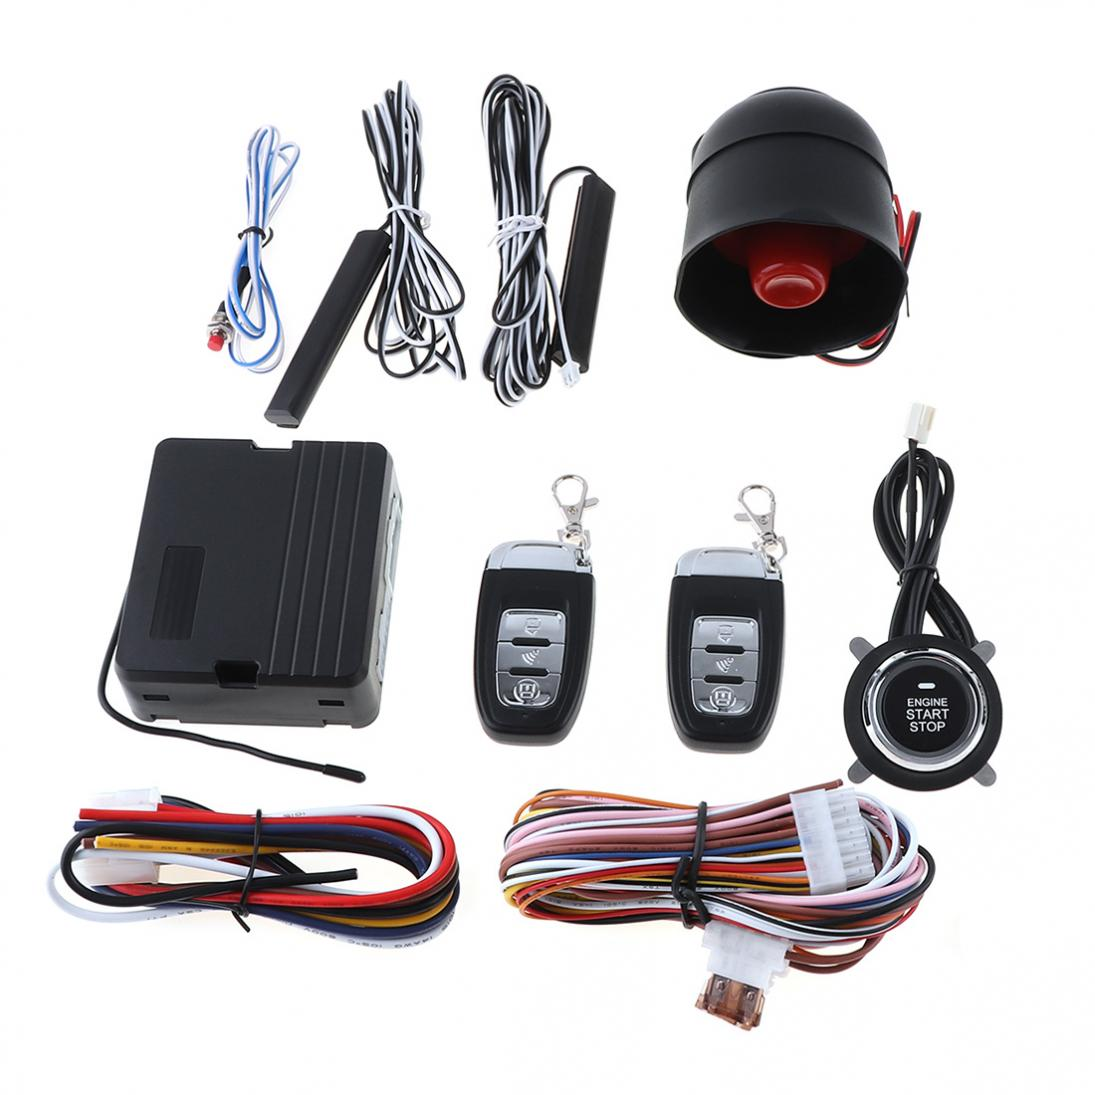 все цены на PKE Auto Car Alarm Start Stop Engine System RFID Central Lock Keyless Entry system Starter Anti-theft Engine Start Stop button